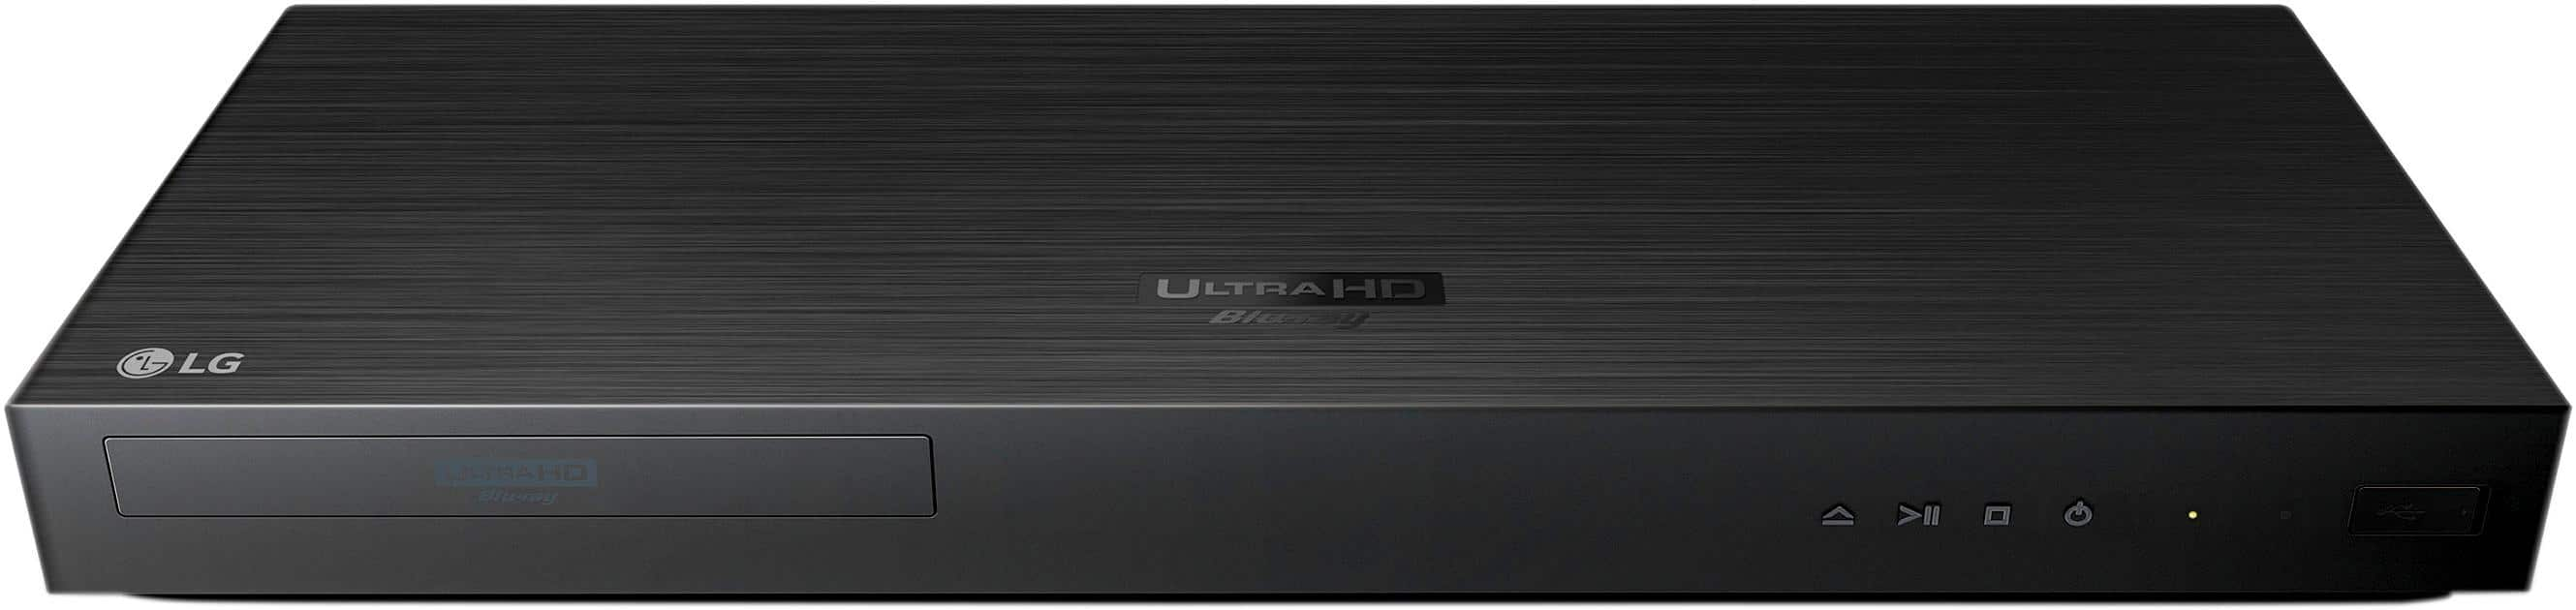 LG UP970 4K Ultra HD Blu-Ray Player $129.99 Best Buy